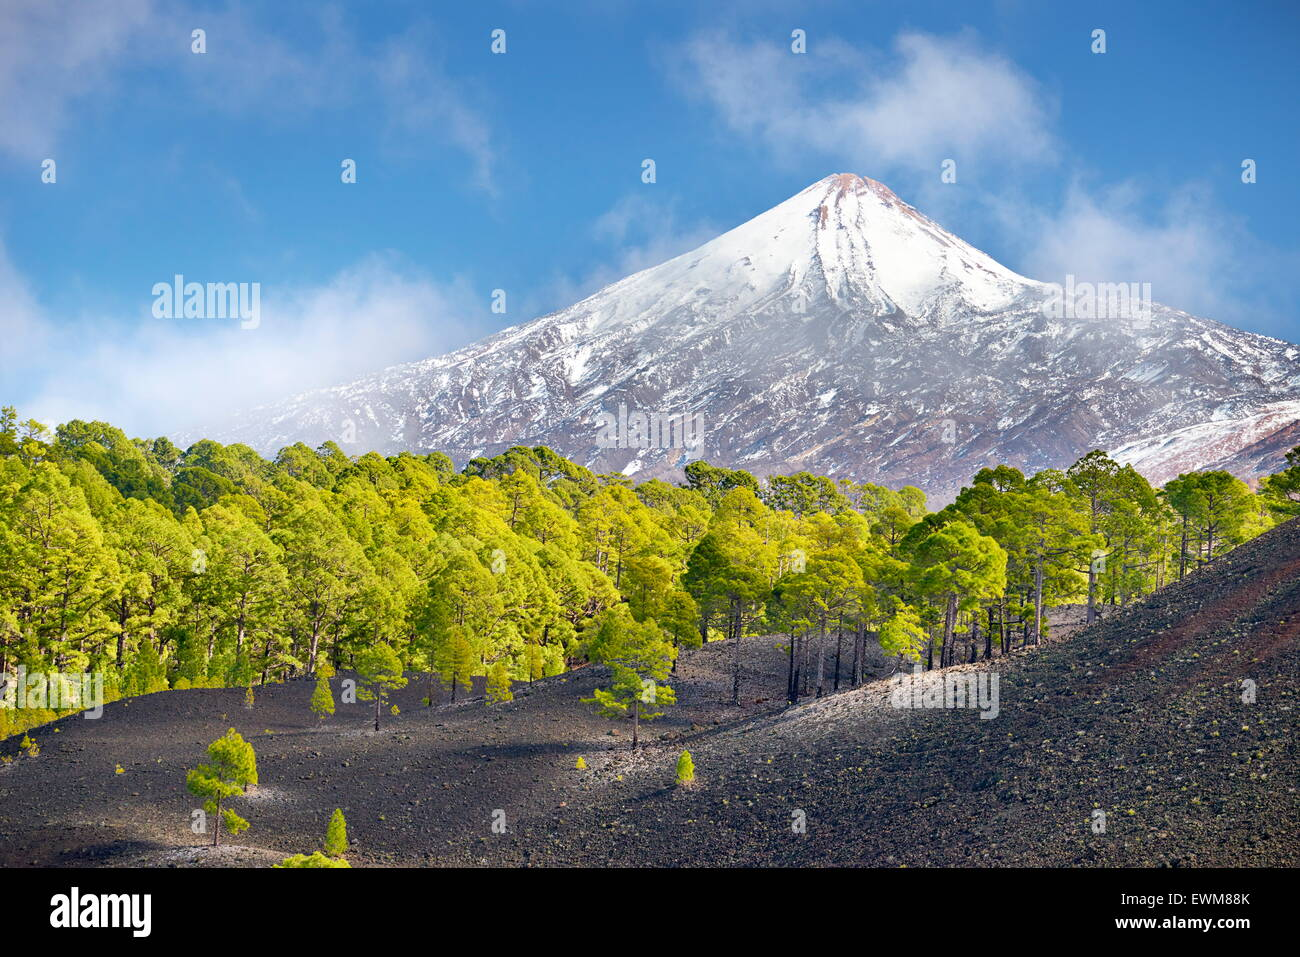 View of Teide Volcano Mount, Tenerife, Canary Islands, Spain - Stock Image